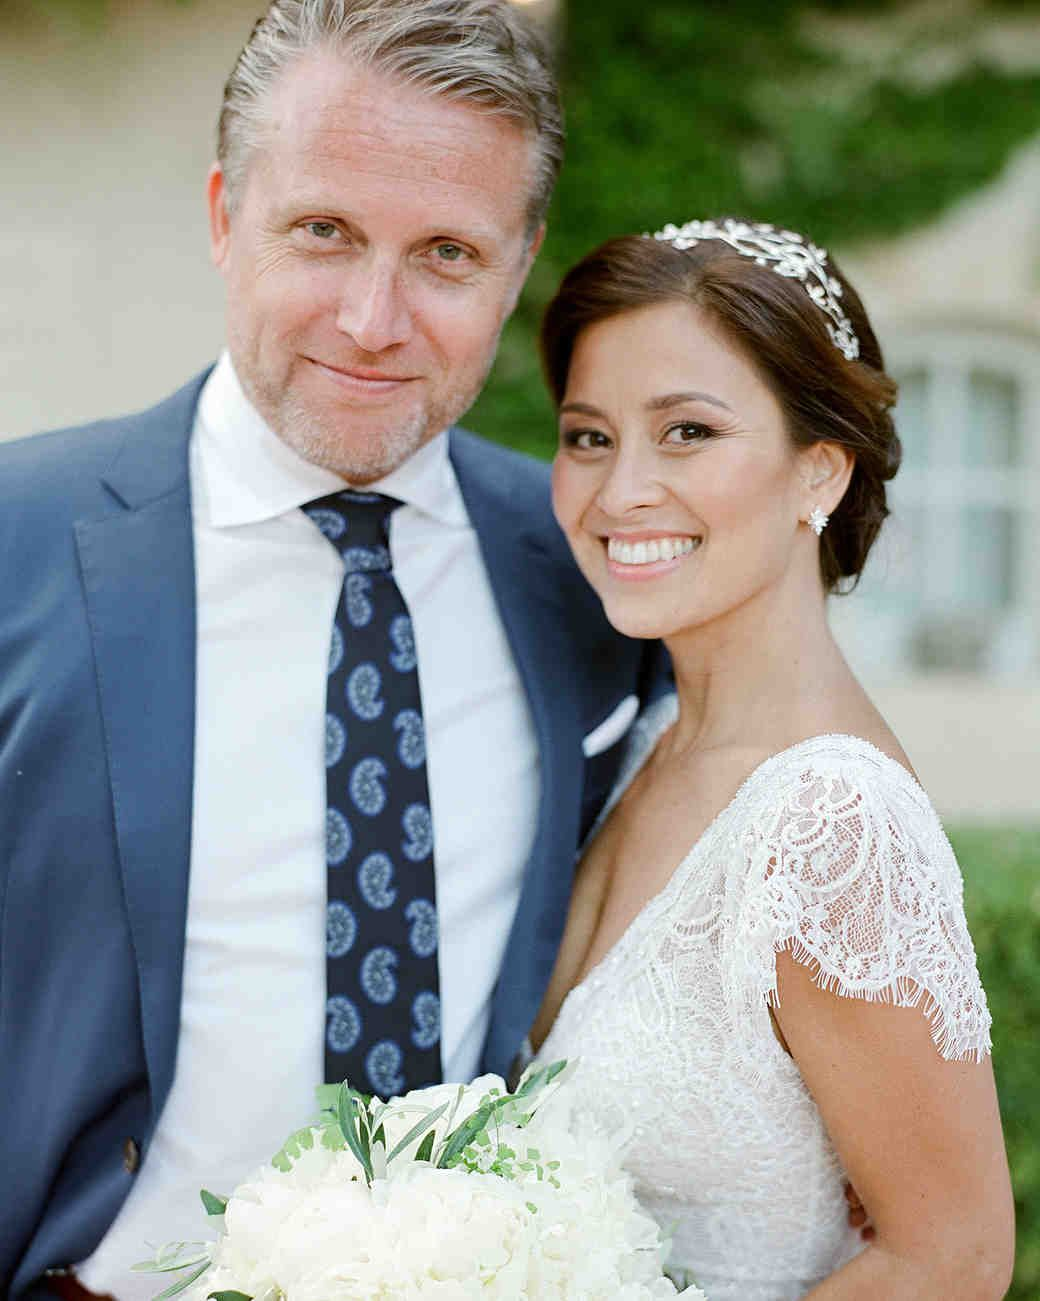 A Chic Family Oriented Destination Wedding in France